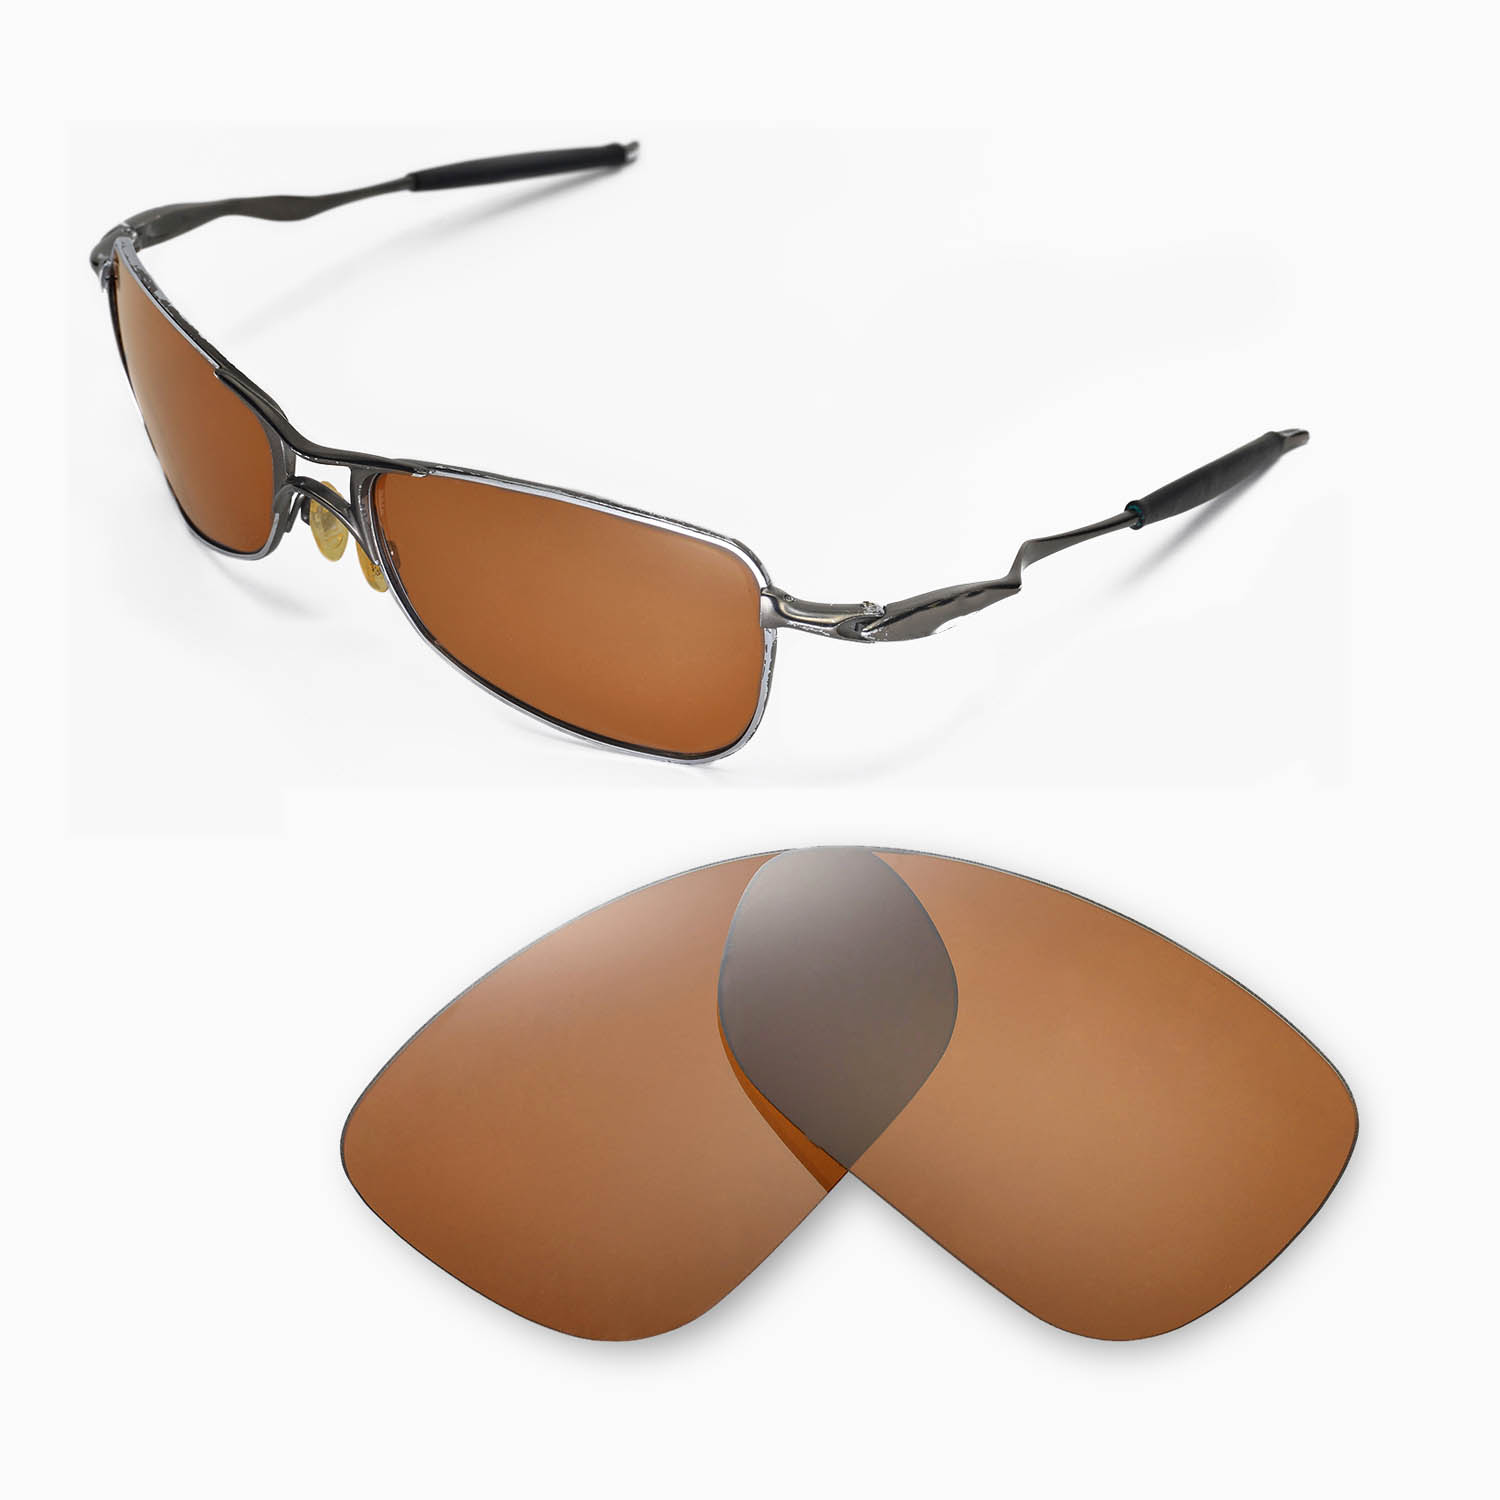 82aa0678c8 New WL Polarized Brown Lenses For Oakley Crosshair 1.0 (2005-2006 ...